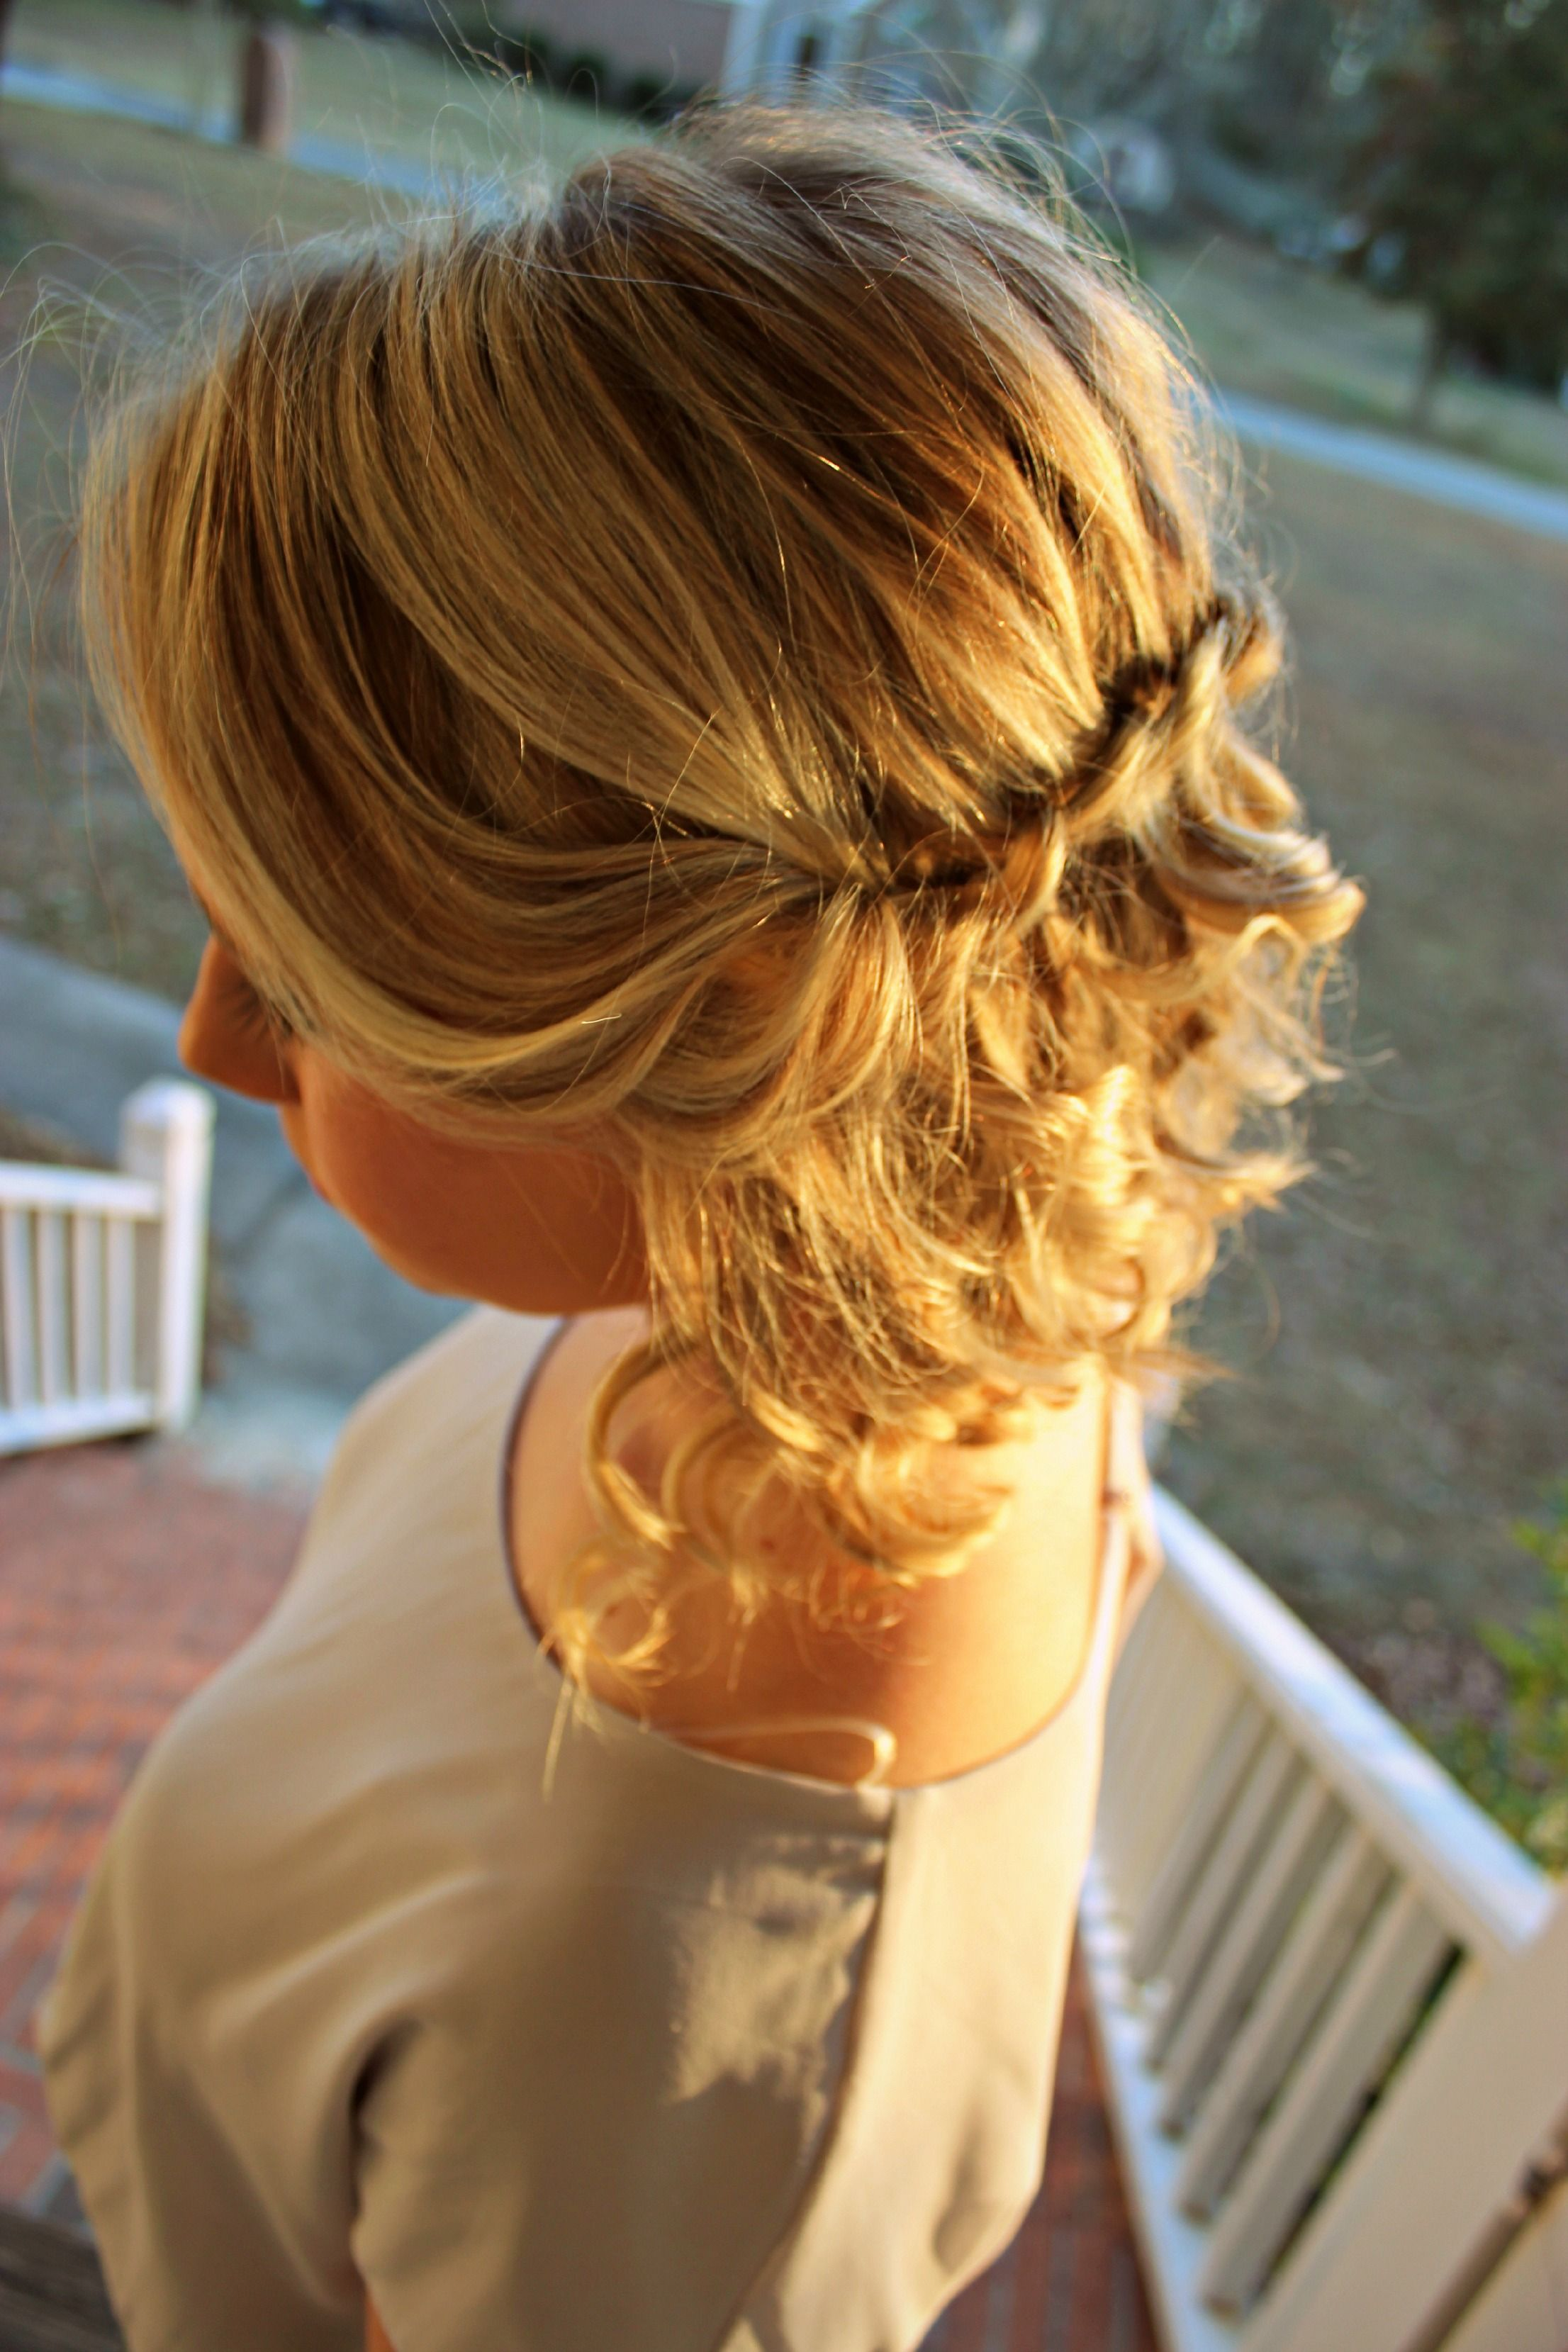 Curls and twists hair styles for short hair glamorness